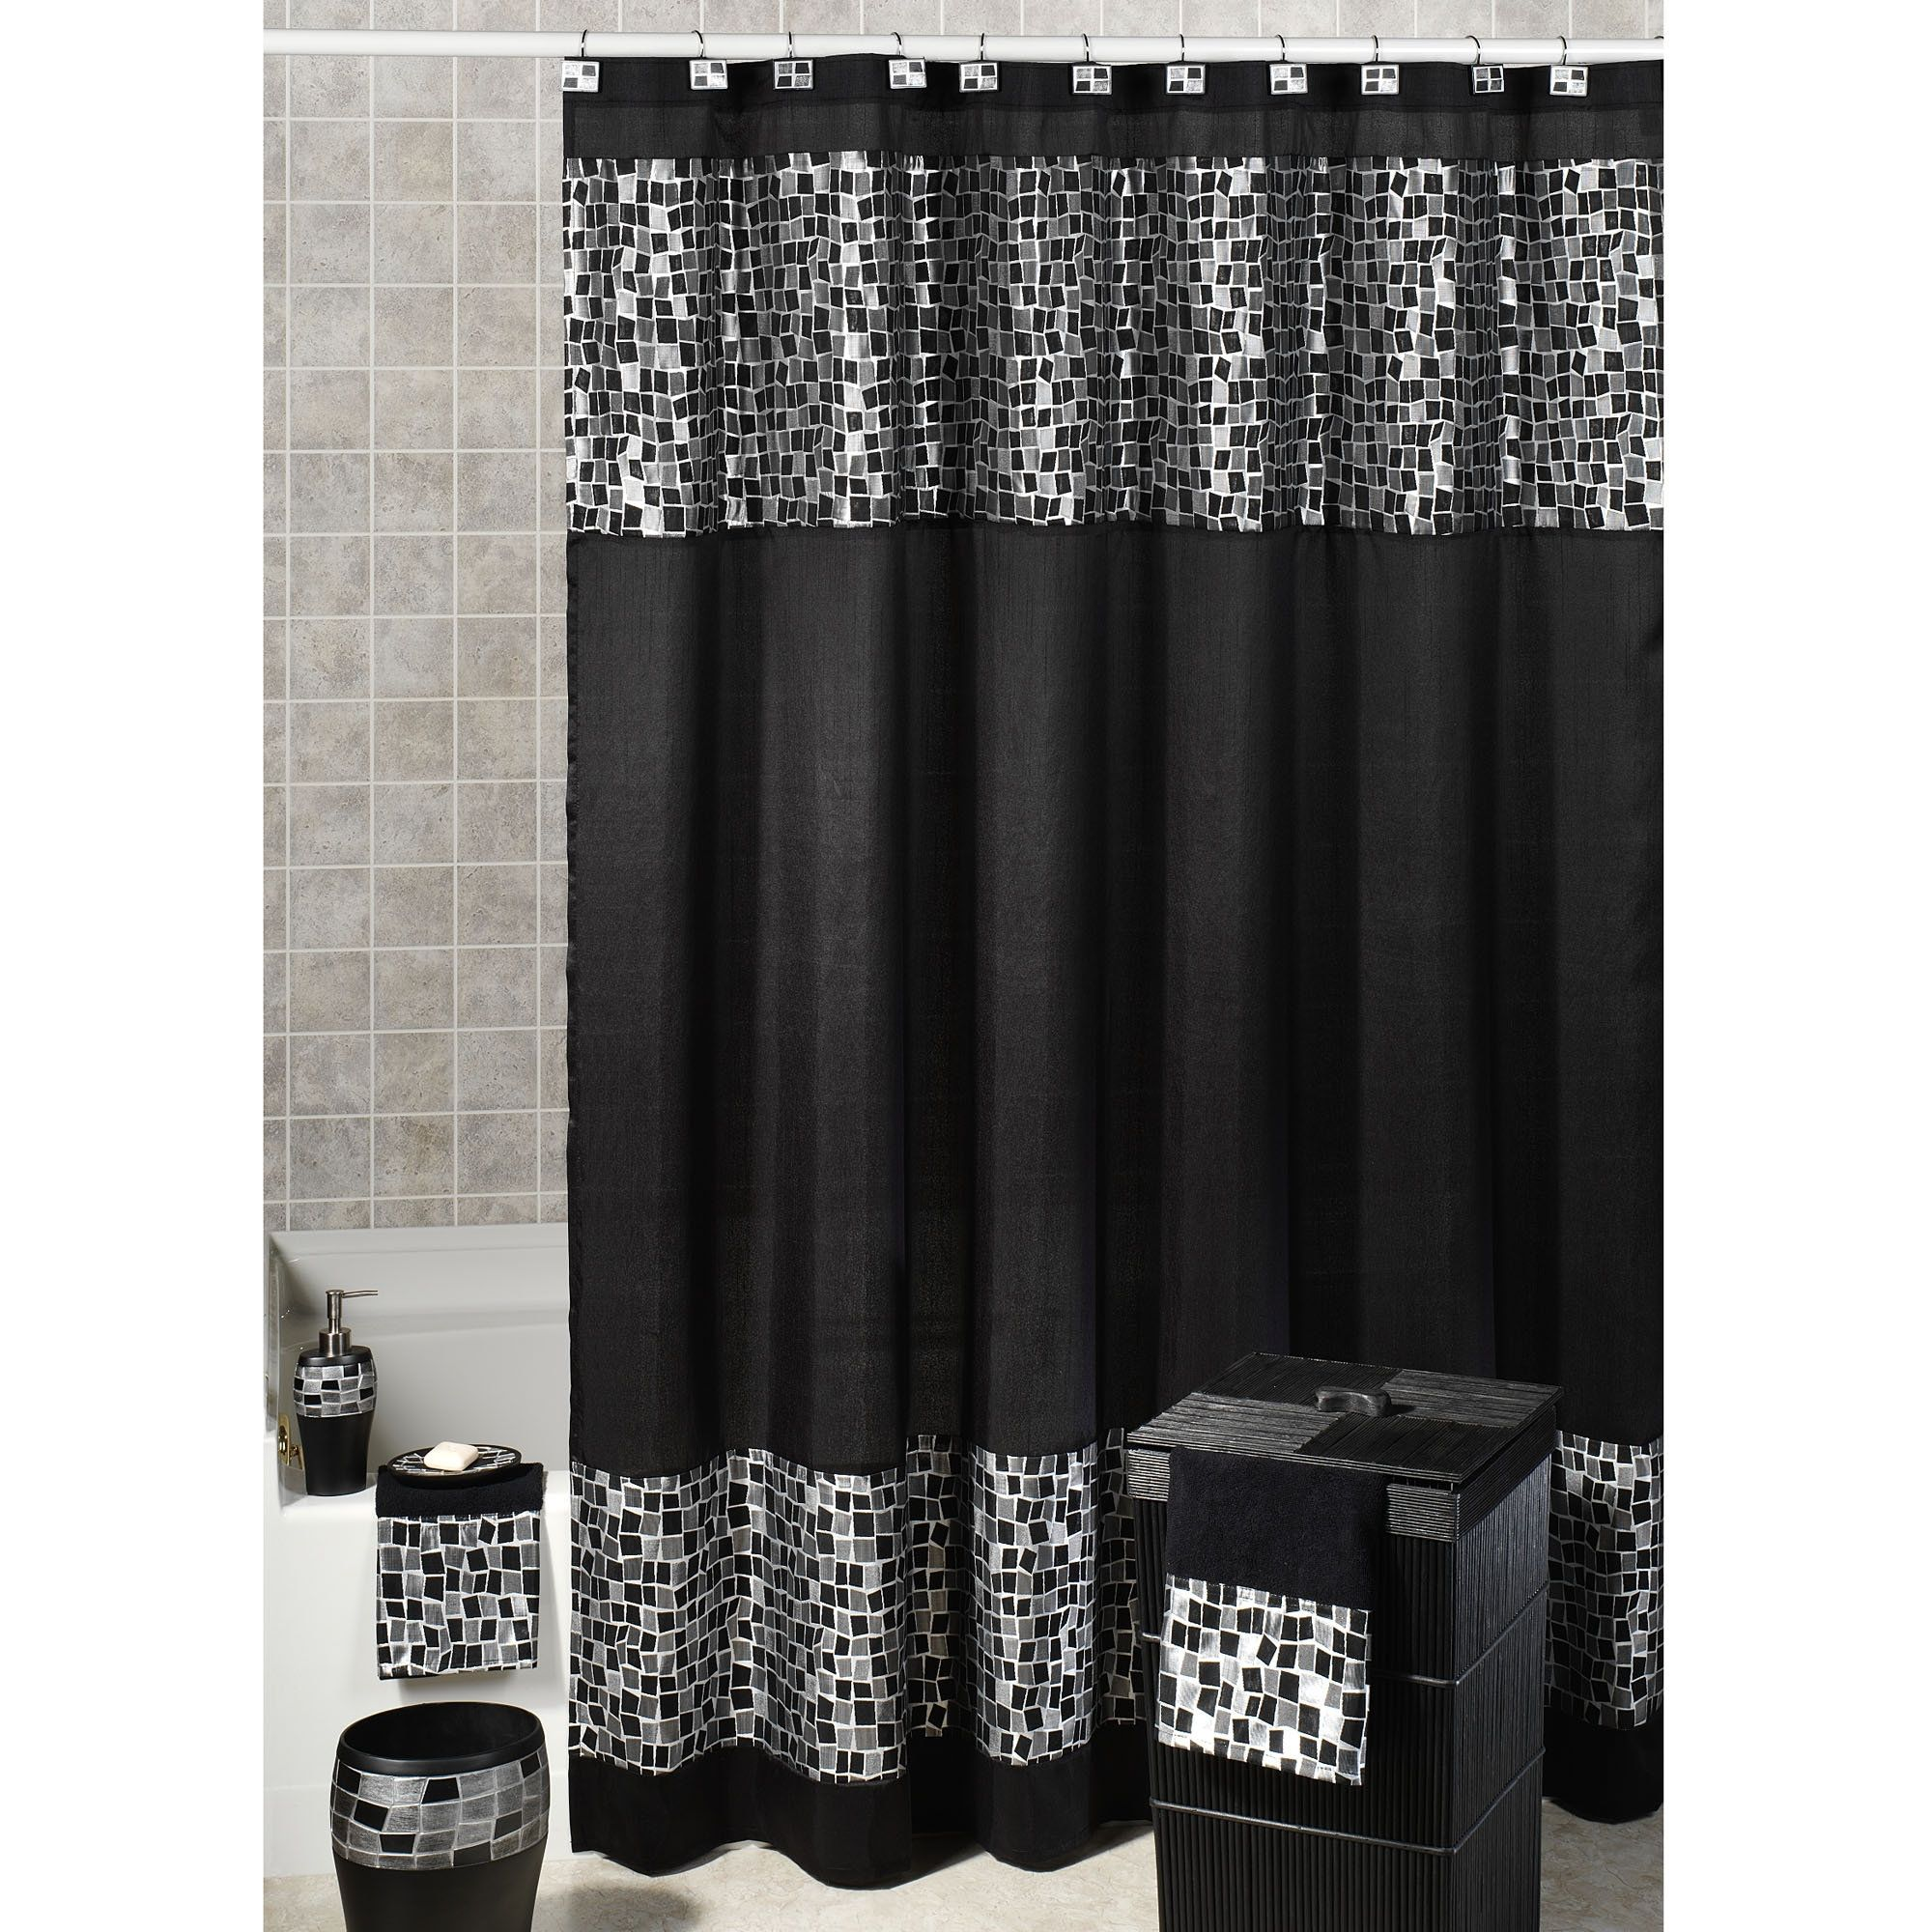 Light Pink And Black Shower Curtain Black Shower Curtains Gray Shower Curtains Silver Shower Curtain